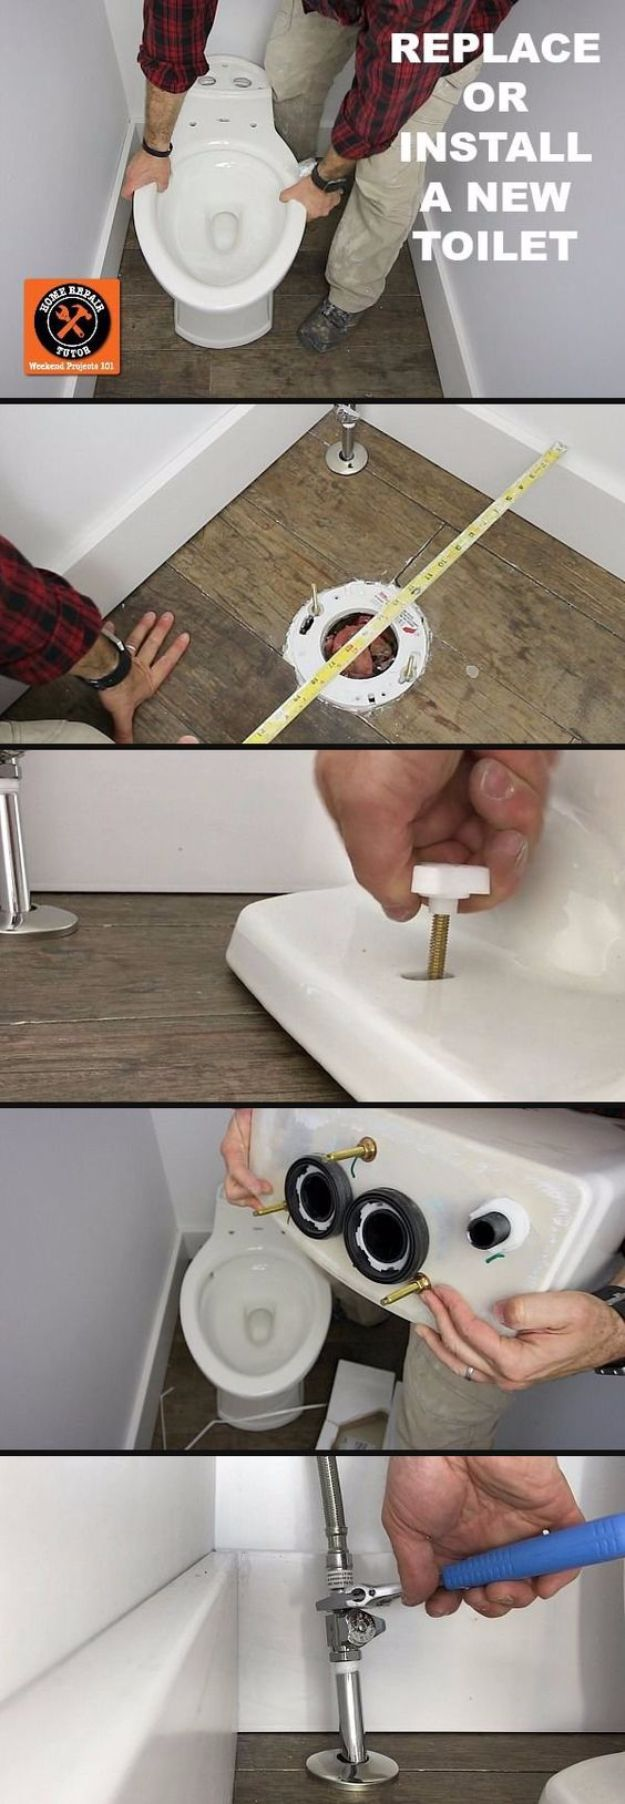 Easy Home Repair Hacks - Replace A Toilet - Quick Ways To Fix Your Home With Cheap and Fast DIY Projects - Step by step Tutorials, Good Ideas for Renovating, Simple Tips and Tricks for Home Improvement on A Budget #diy #homeimprovement